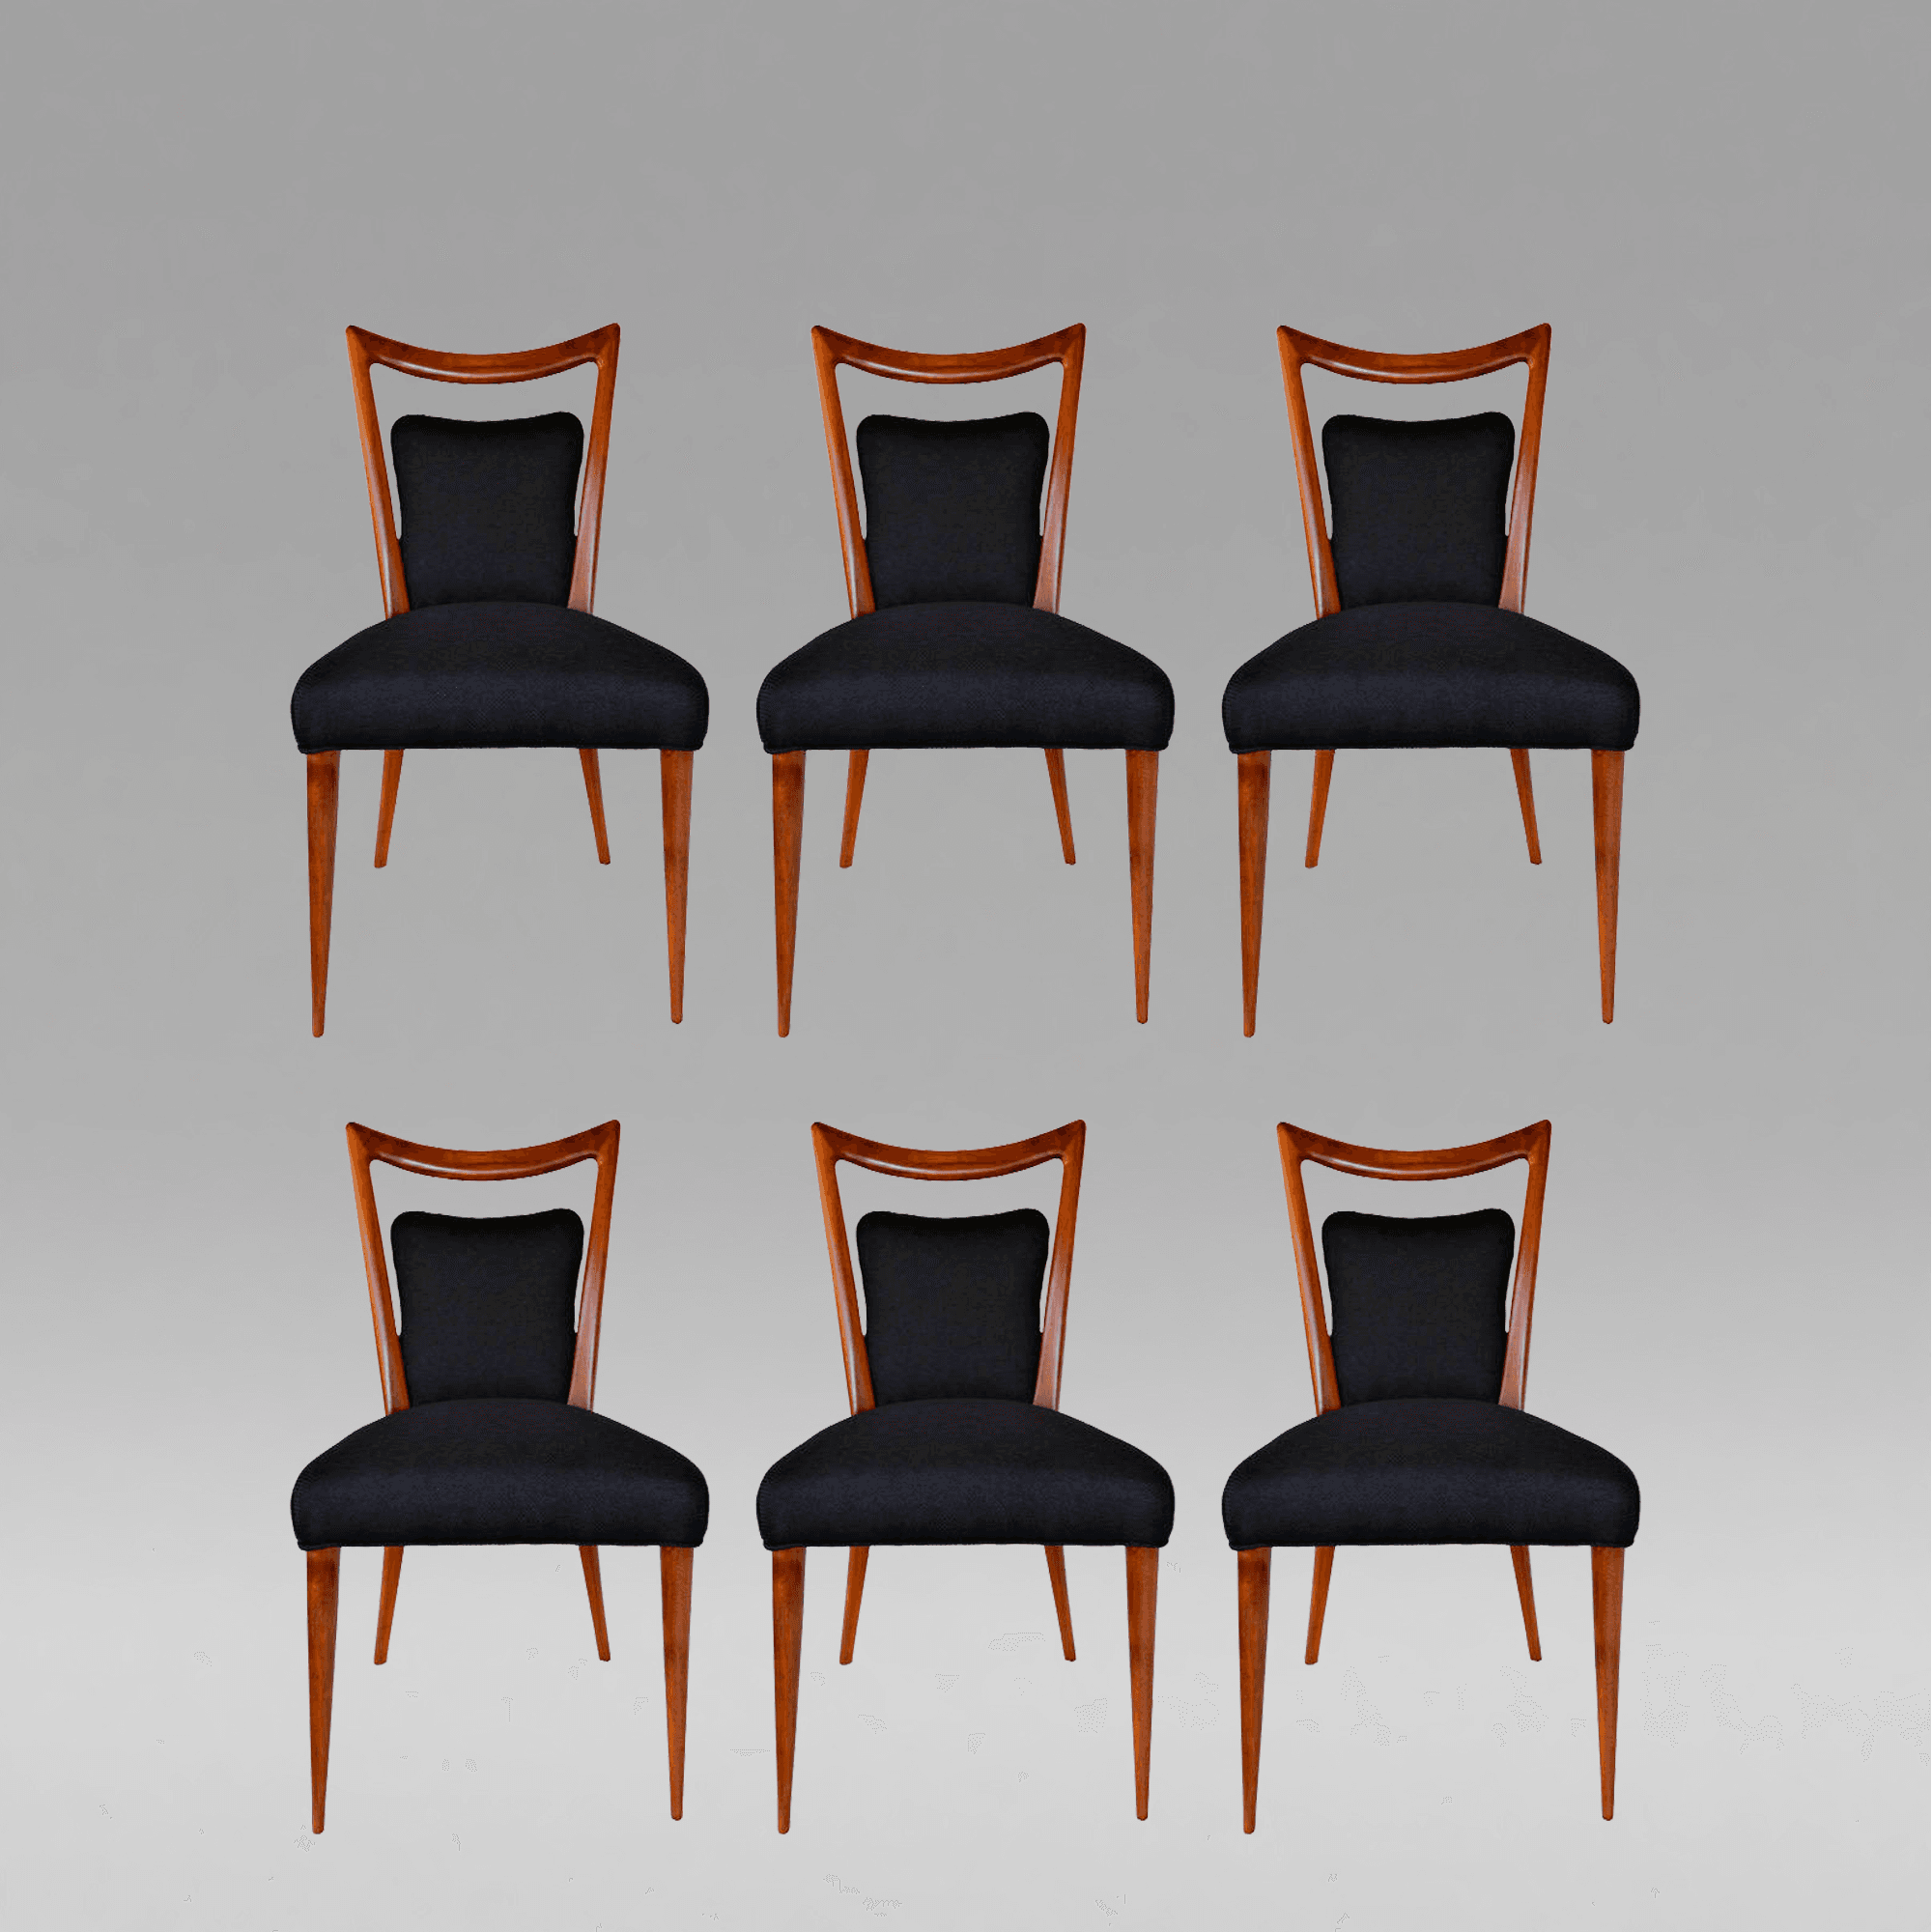 Rare Set Of Six Art Deco Dining Chairs By Melchiorre Bega C 1955 Courtesy Archive